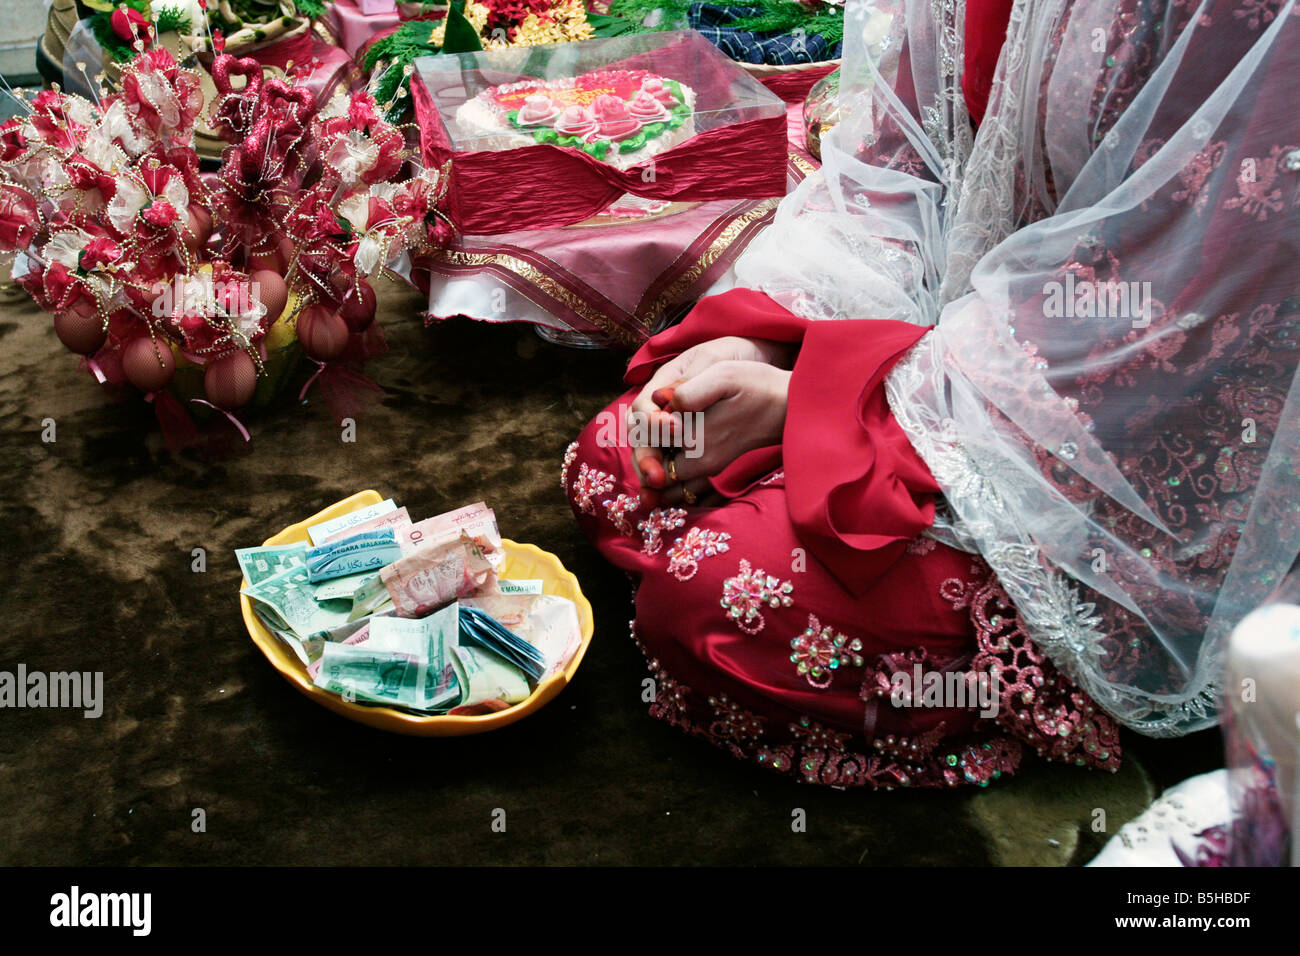 Gift In The Form Of Cash For A Bride In A Malay Wedding Malaysia